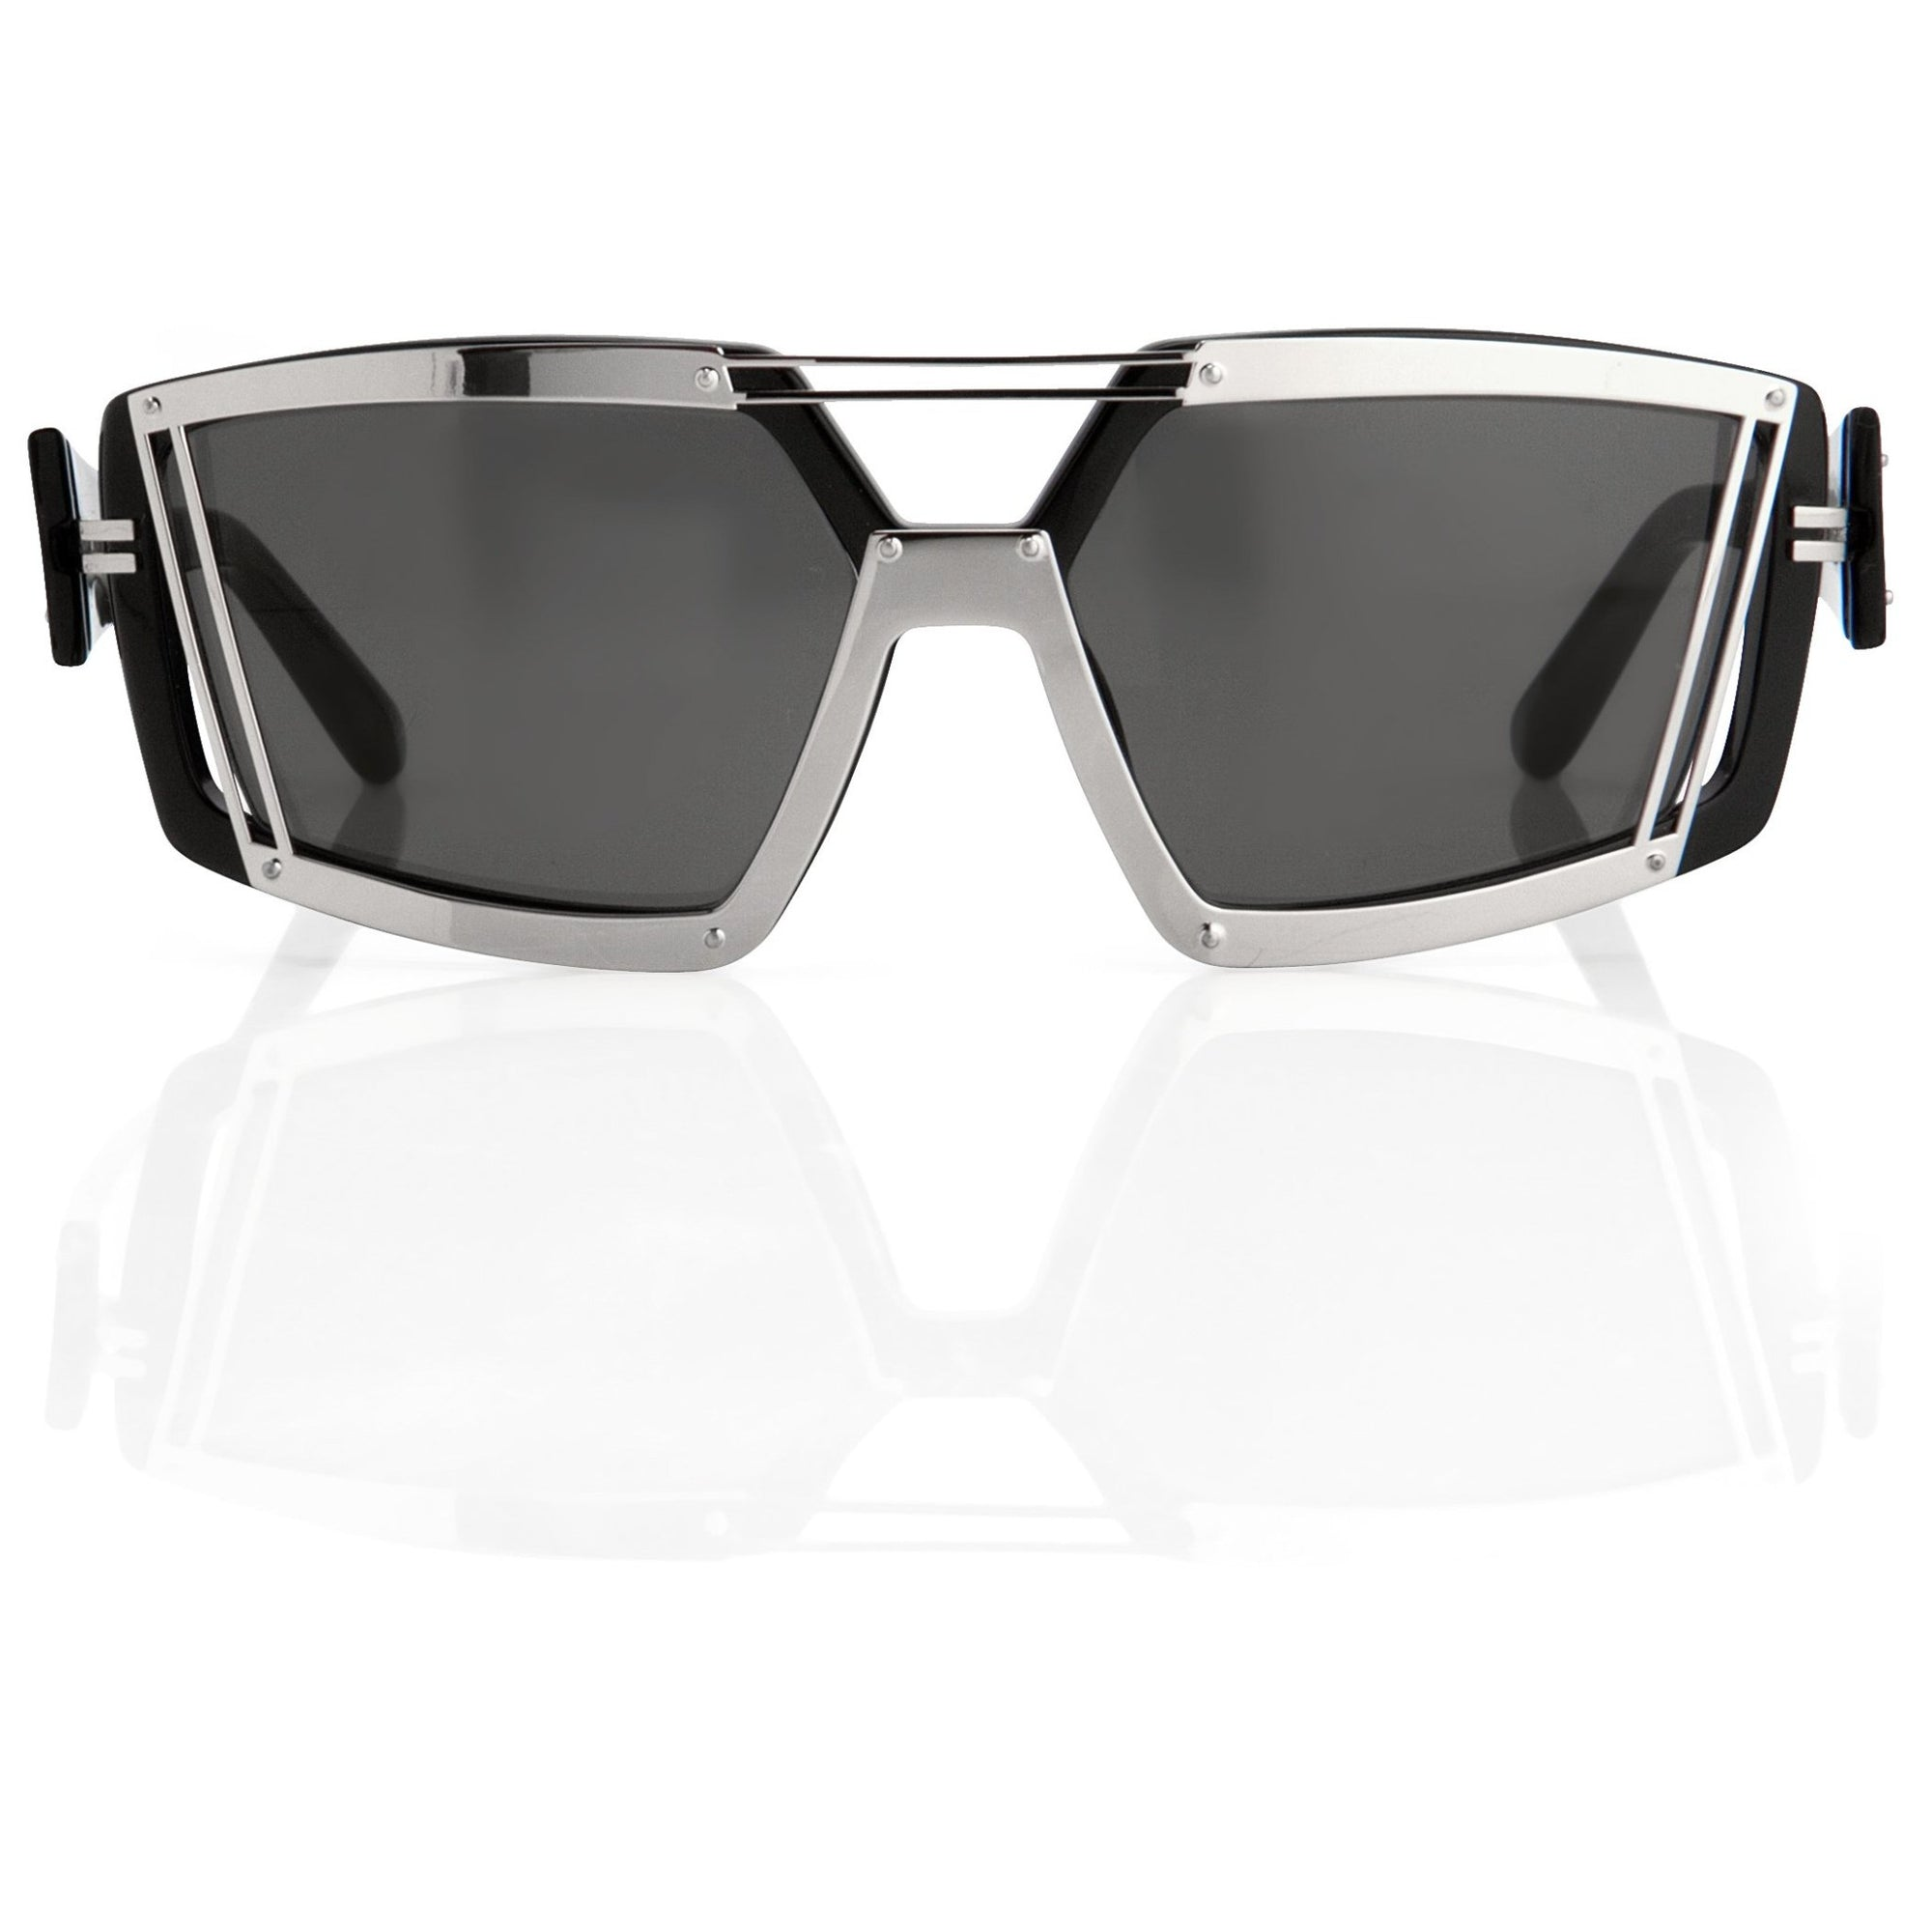 Prabal Gurung Sunglasses Rectangular Black Bar With Grey Category 3 Lenses PG3C1SUN - Watches & Crystals